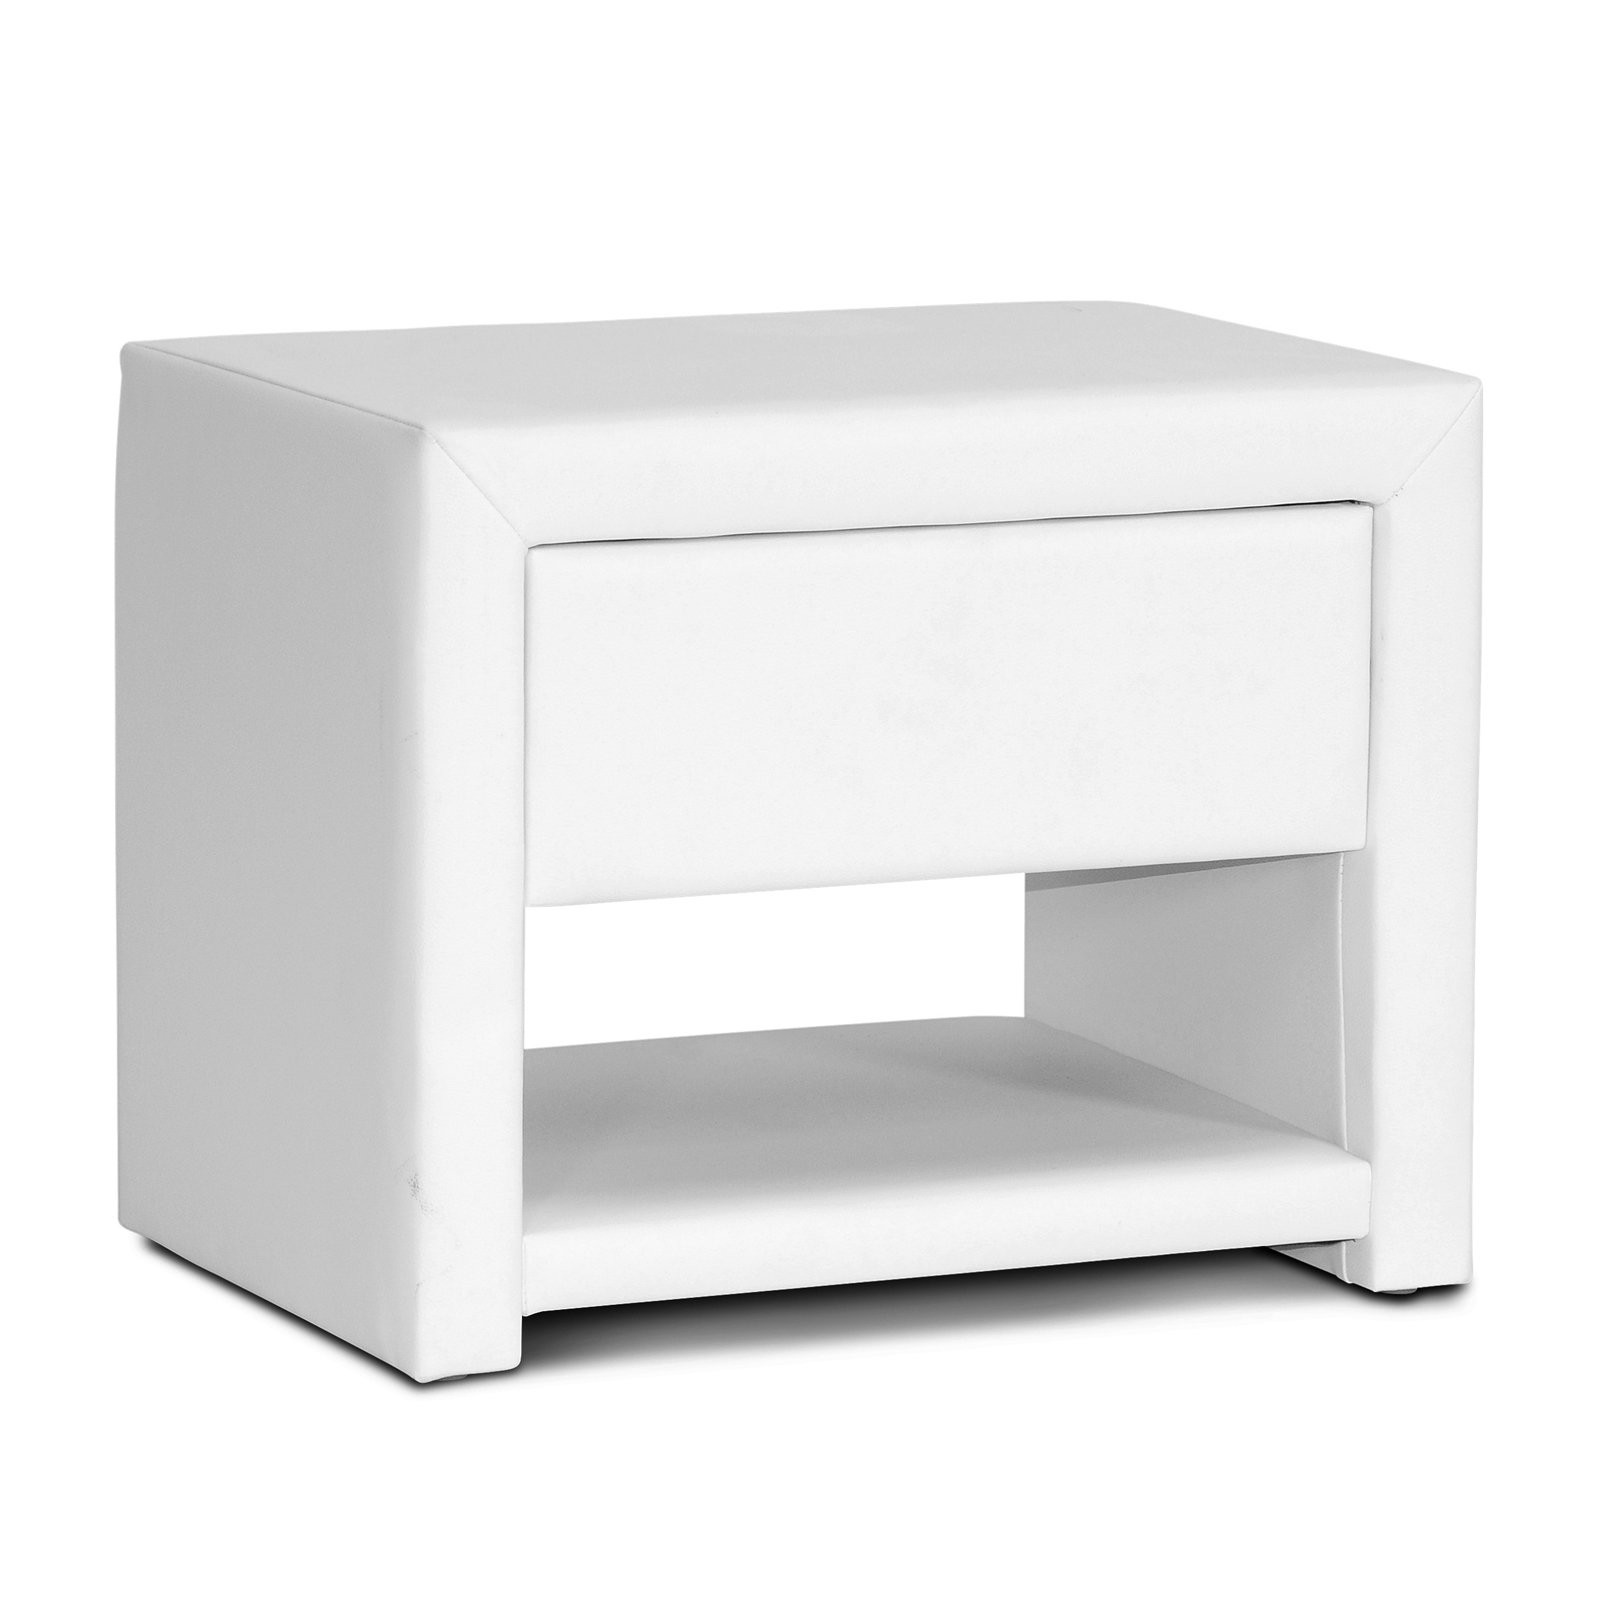 Dwr Coffee Table | Modern Bedside Tables | West Elm Side Tables